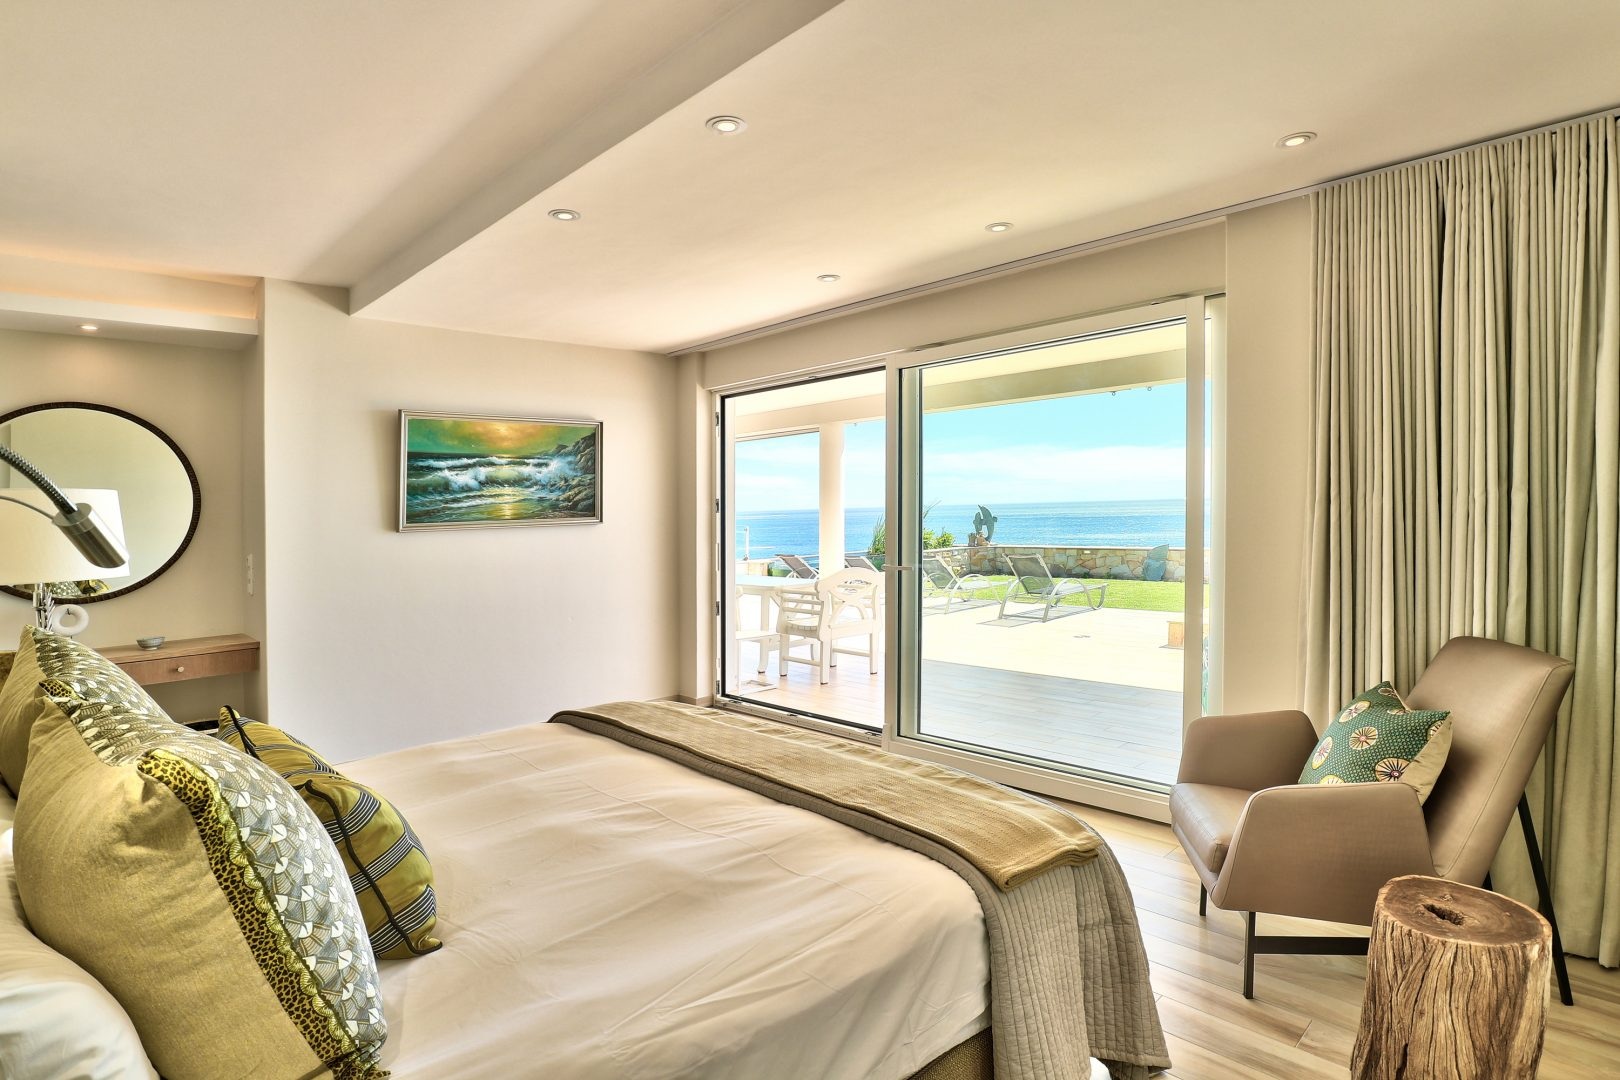 , Oasis Apartment, Ocean View House, Ocean View House